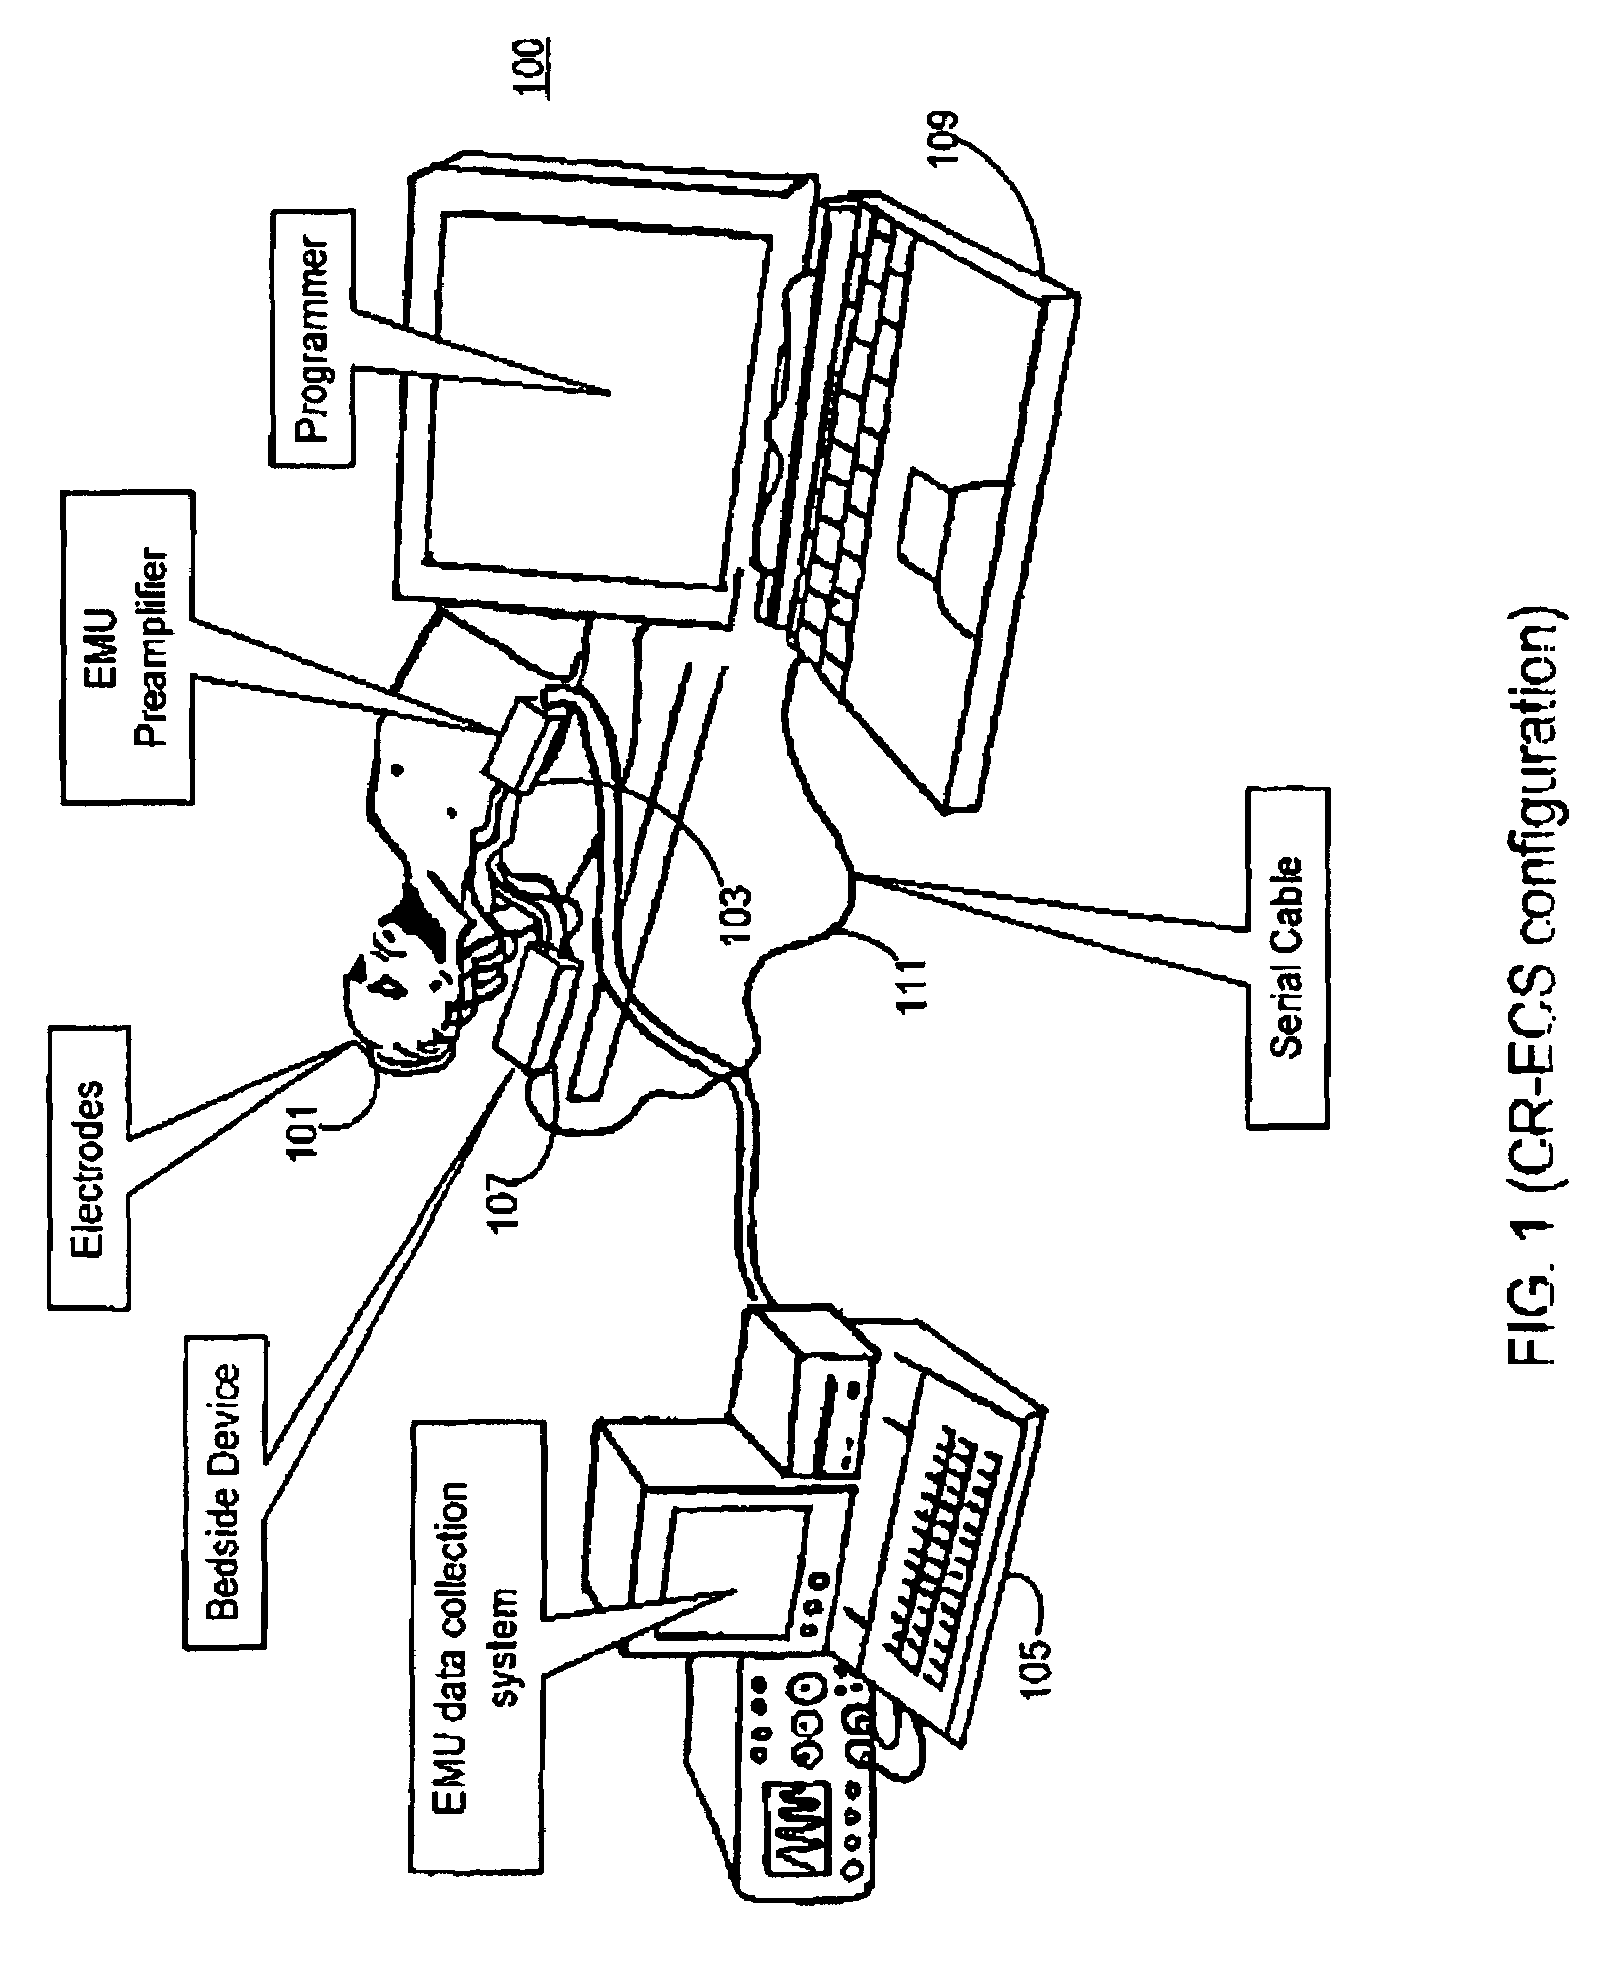 patent us7624293 synchronization and calibration of clocks for a ADT Sign patent drawing